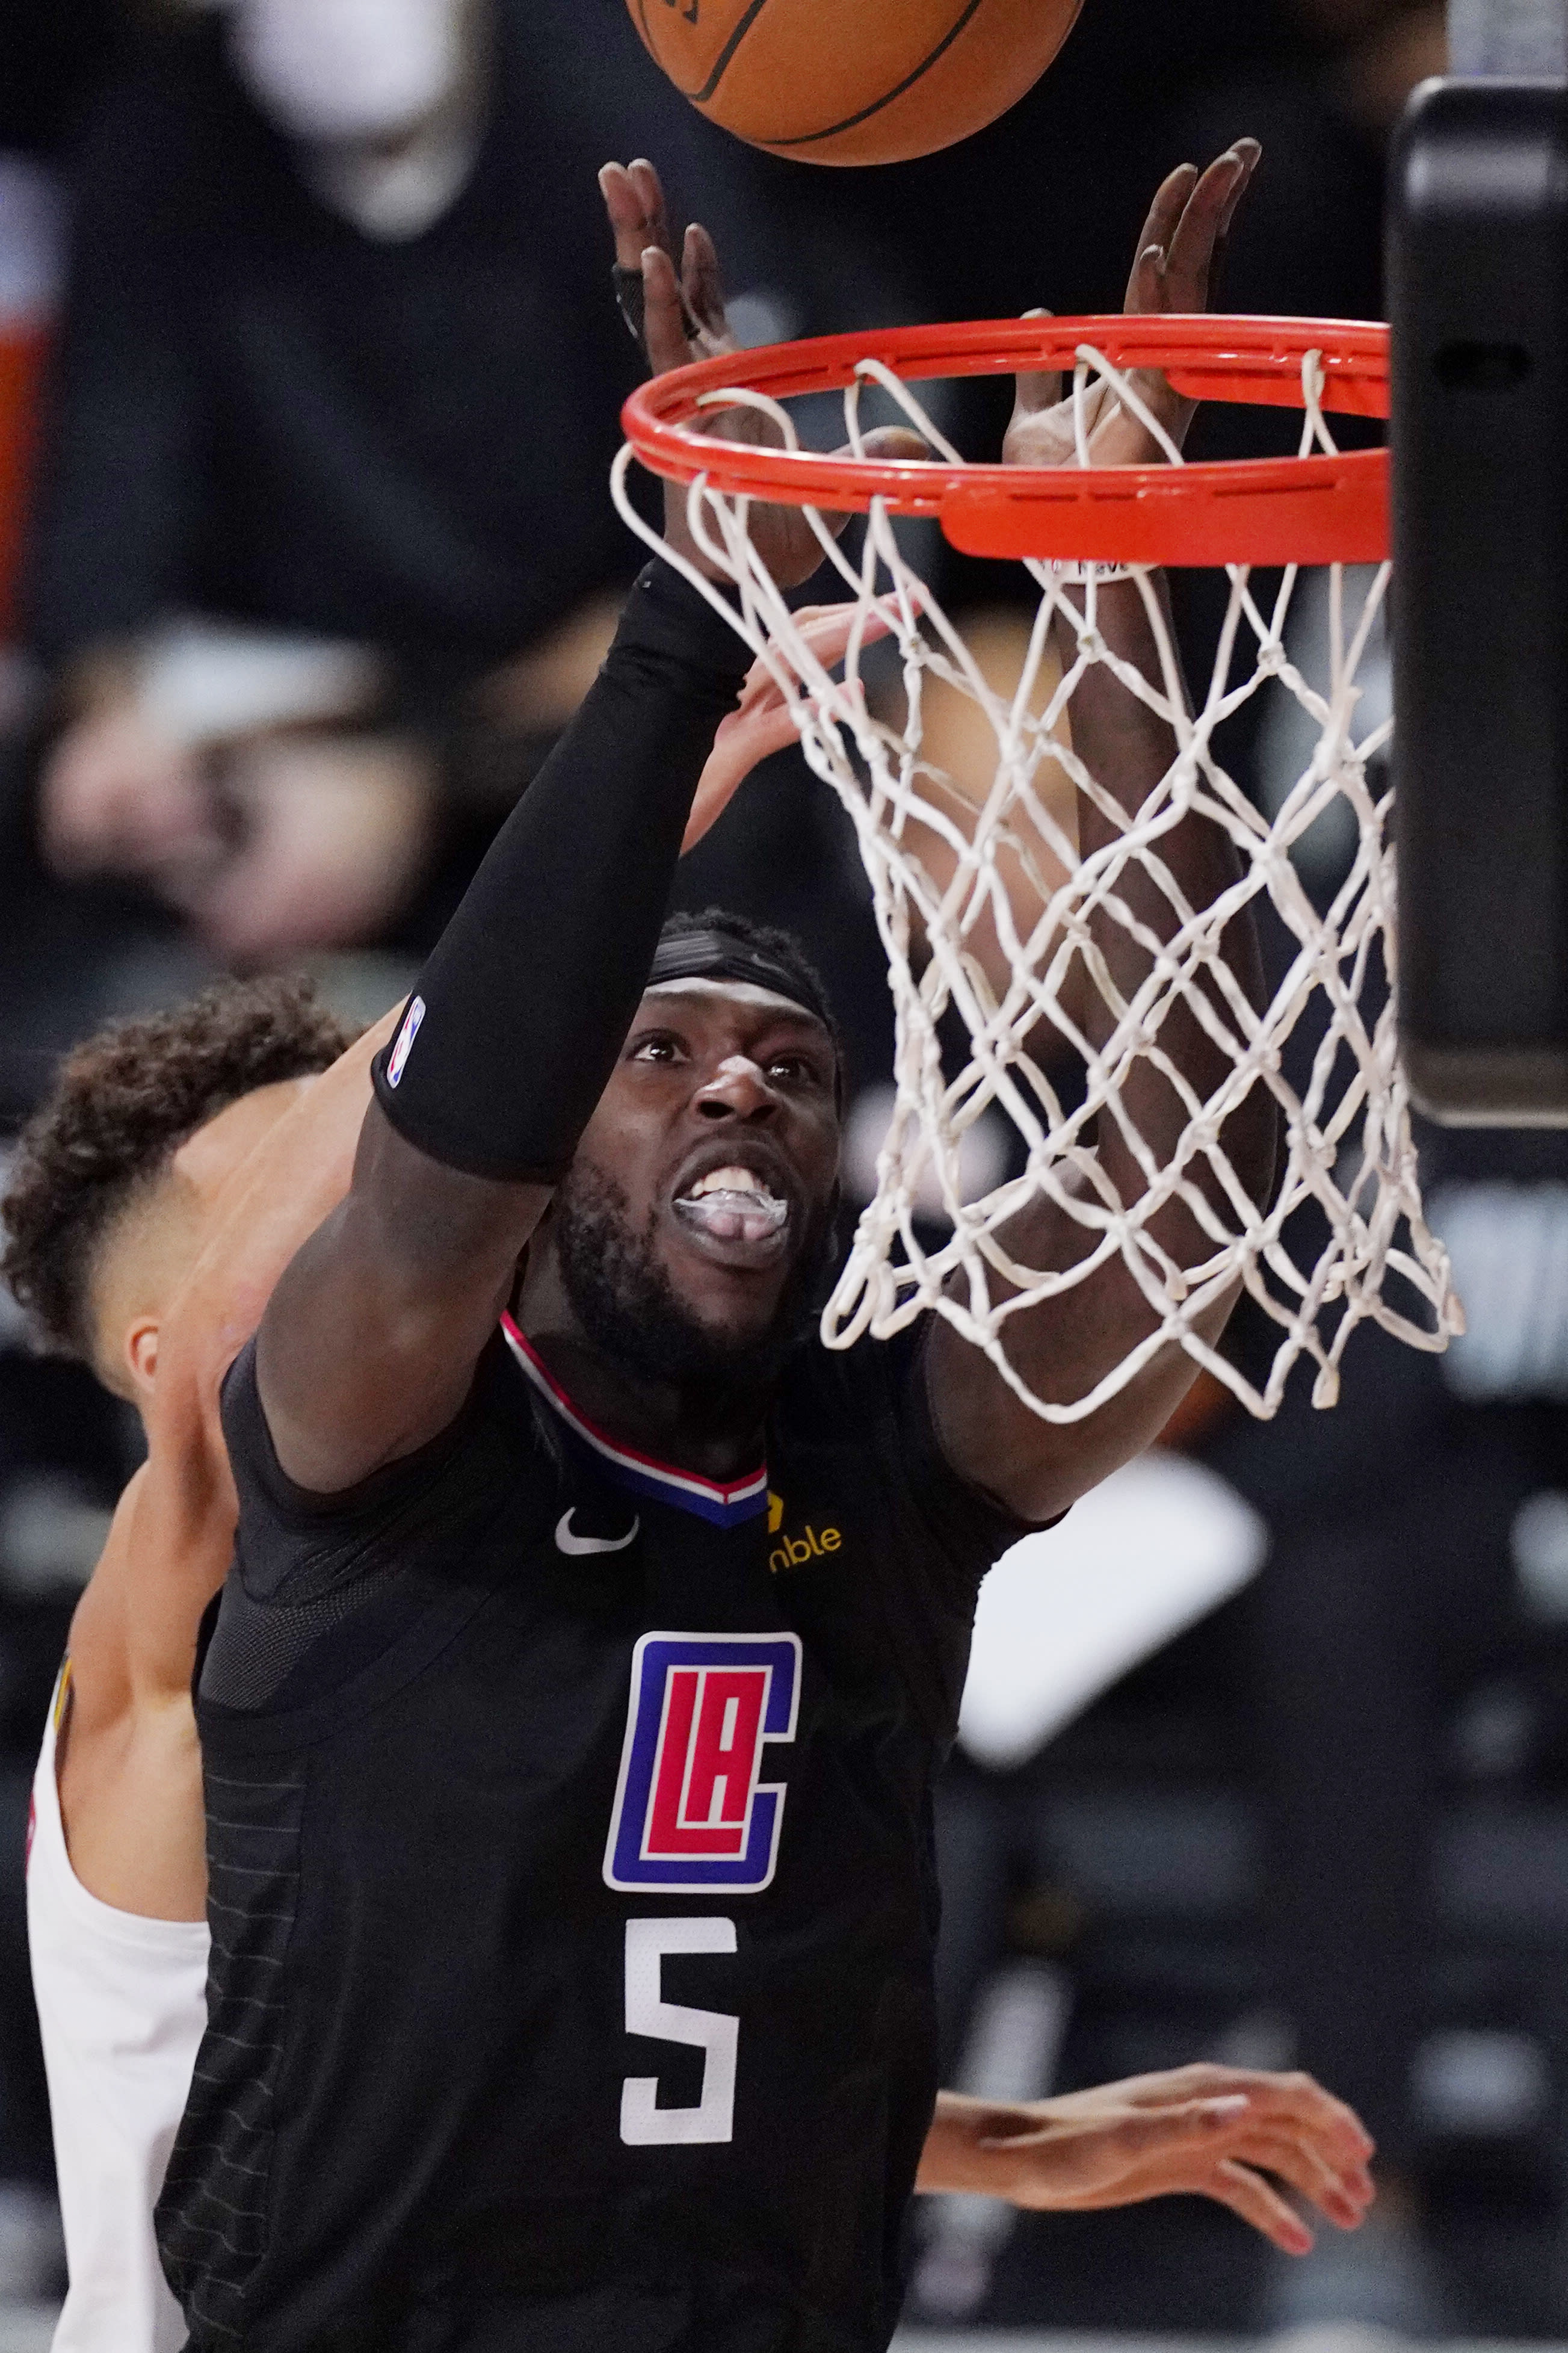 Los Angeles Clippers' Montrezl Harrell (5) shoots in front of Denver Nuggets' Michael Porter Jr. (1) in the second half of an NBA conference semifinal playoff basketball game Thursday, Sept 3, 2020, in Lake Buena Vista Fla. (AP Photo/Mark J. Terrill)